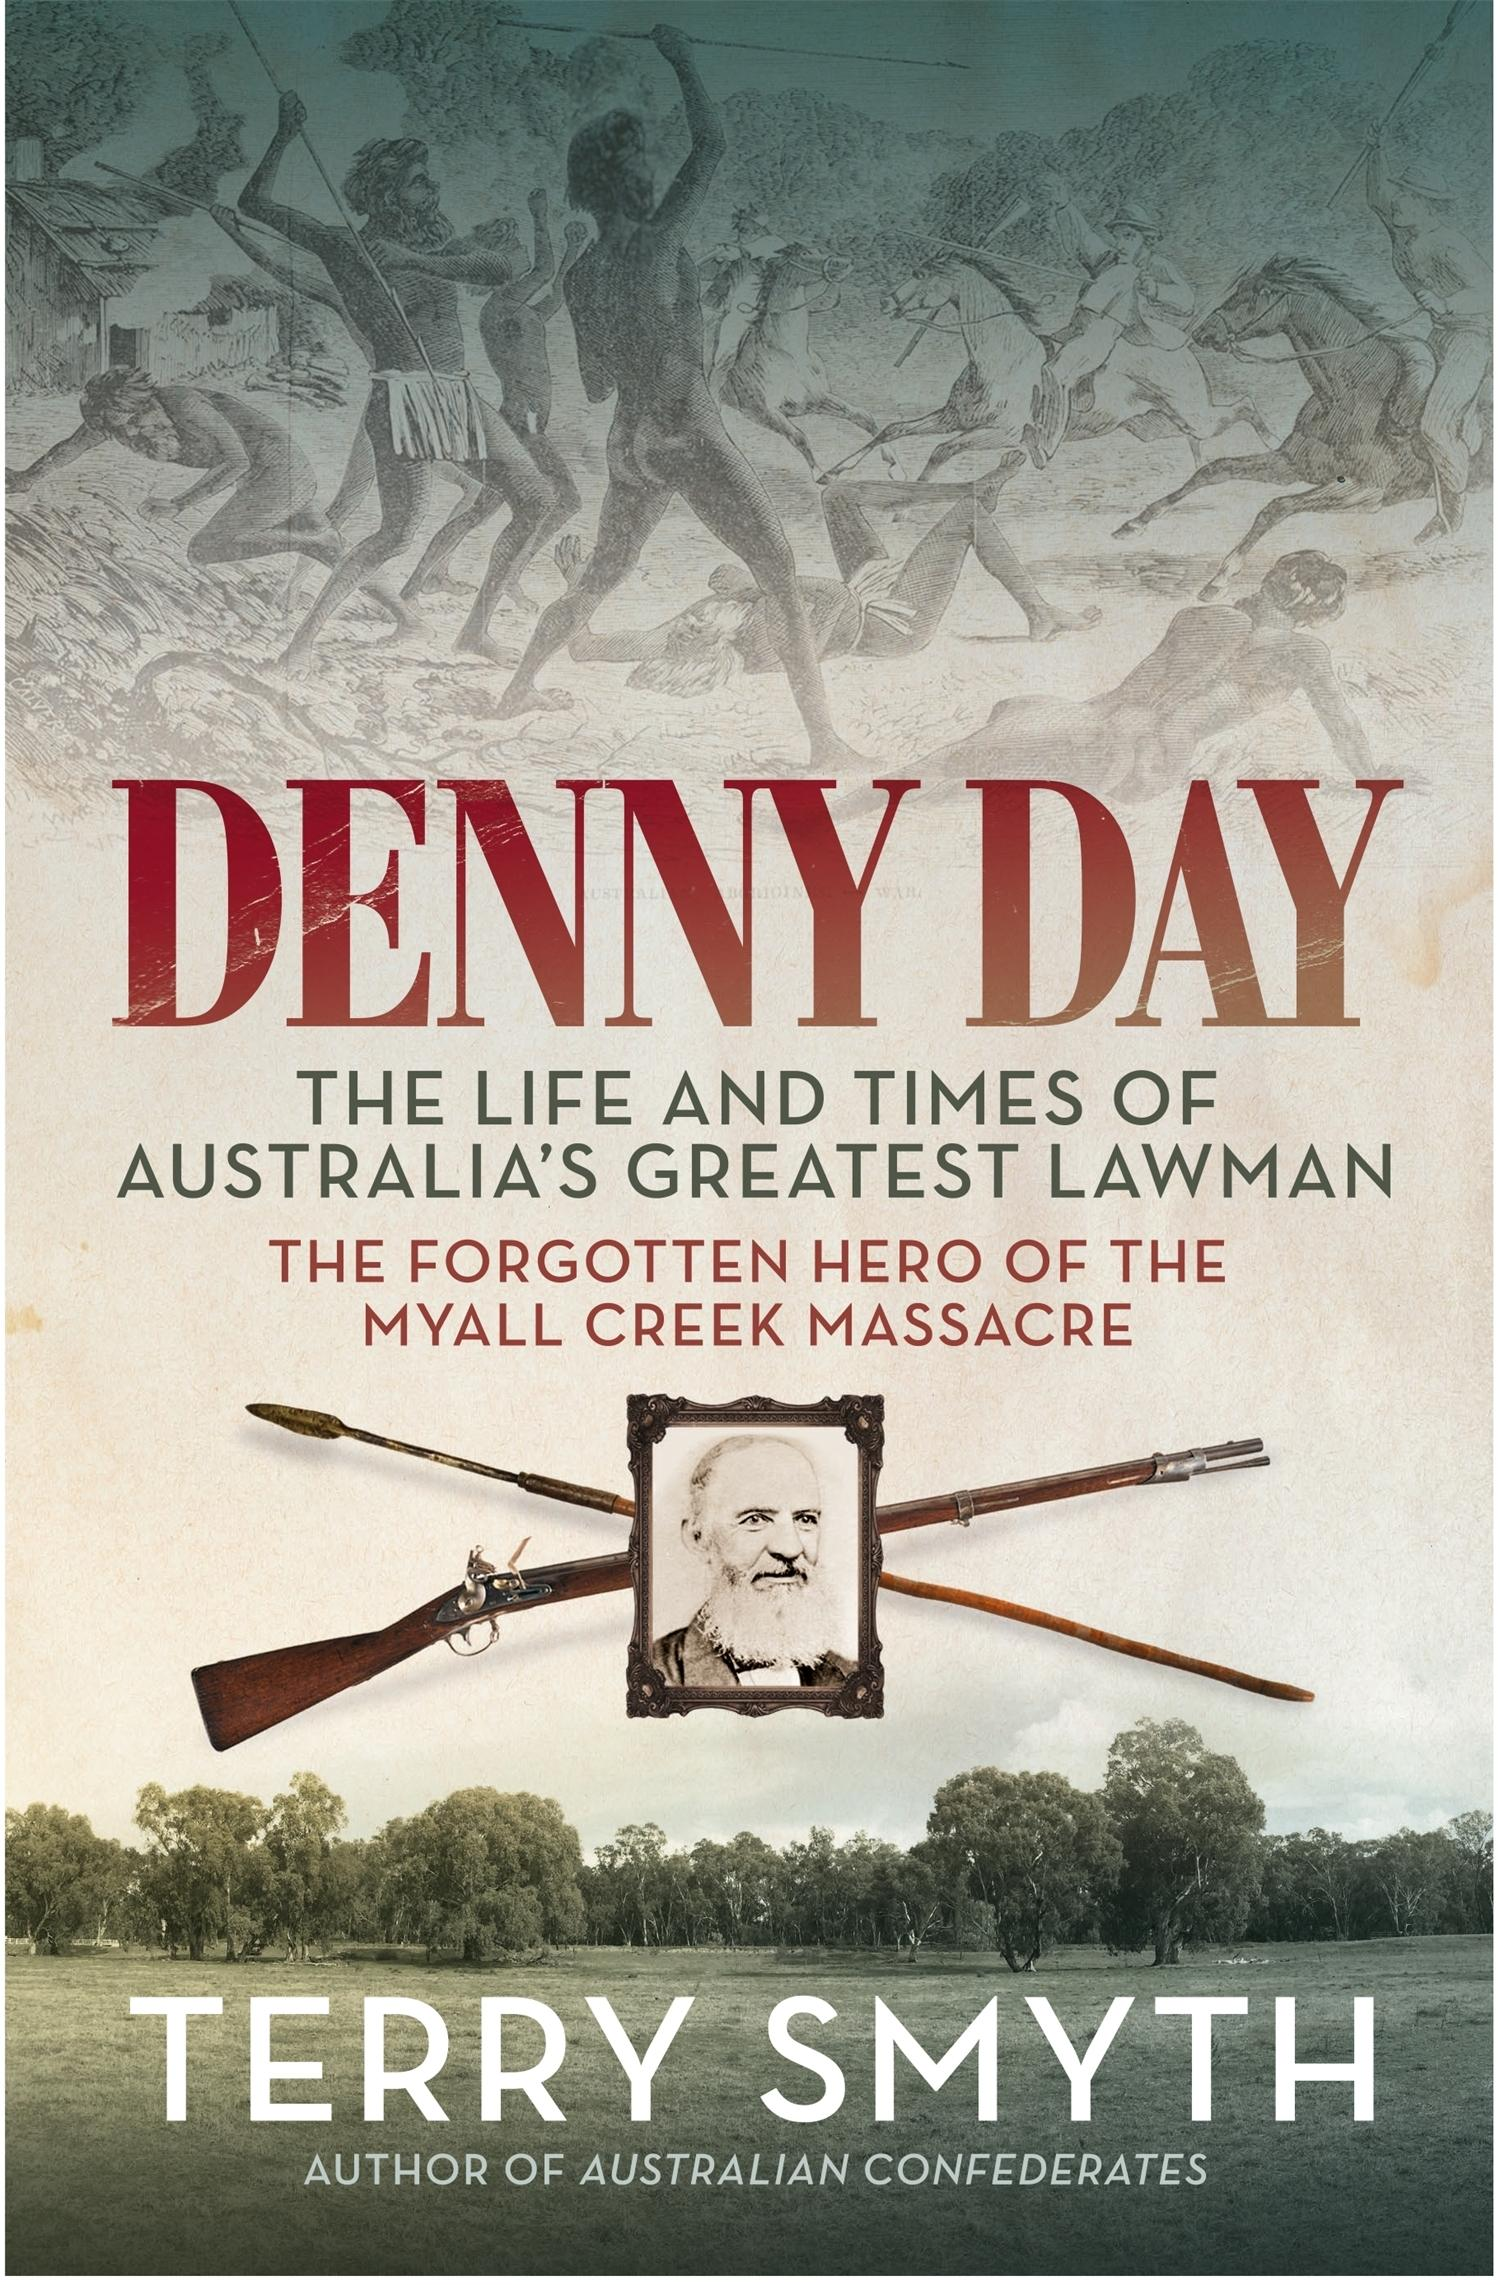 Denny Day: The Life and Times of Australia's Greatest Lawman - the Forgotten Hero of the MyallCreekMassacre